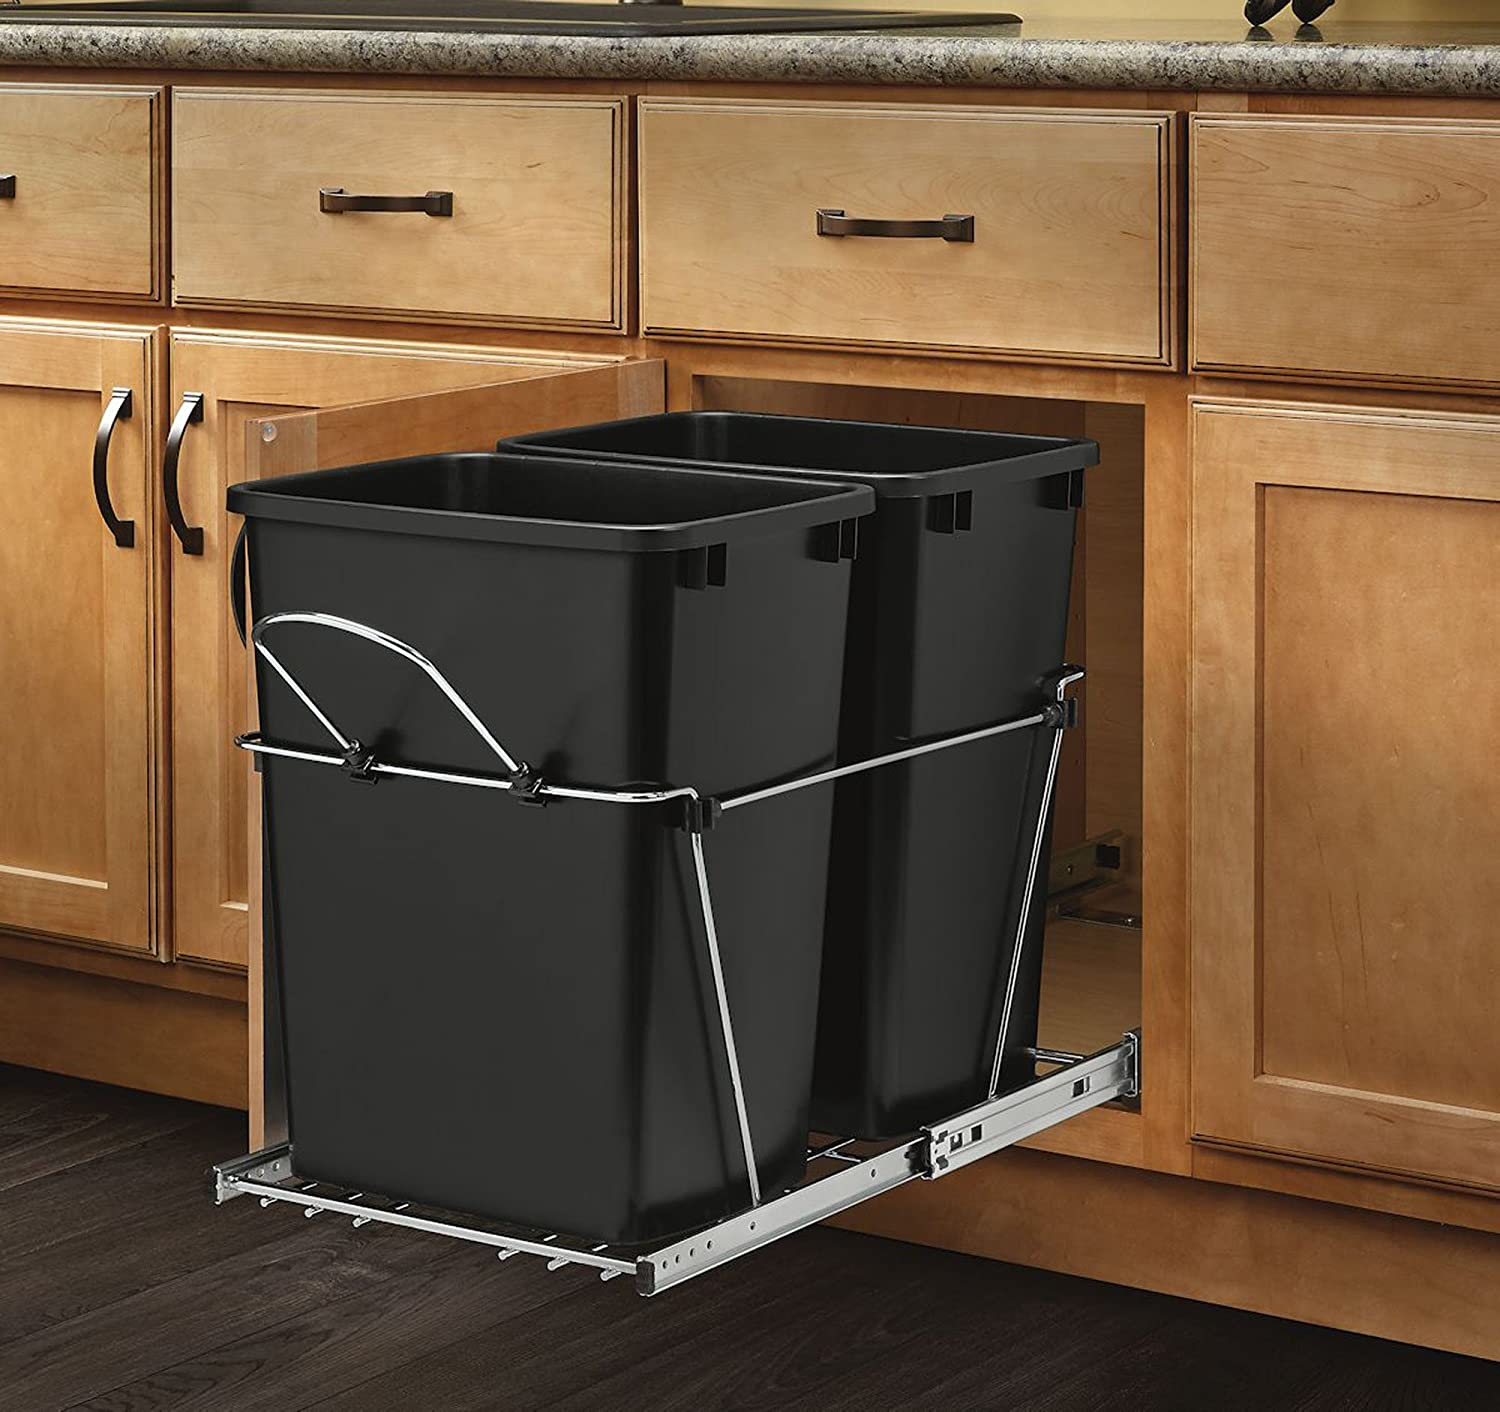 Wooden Kitchen Trash Containers Pull Out Trash Garbage Can Waste Container Kitchen Cabinet